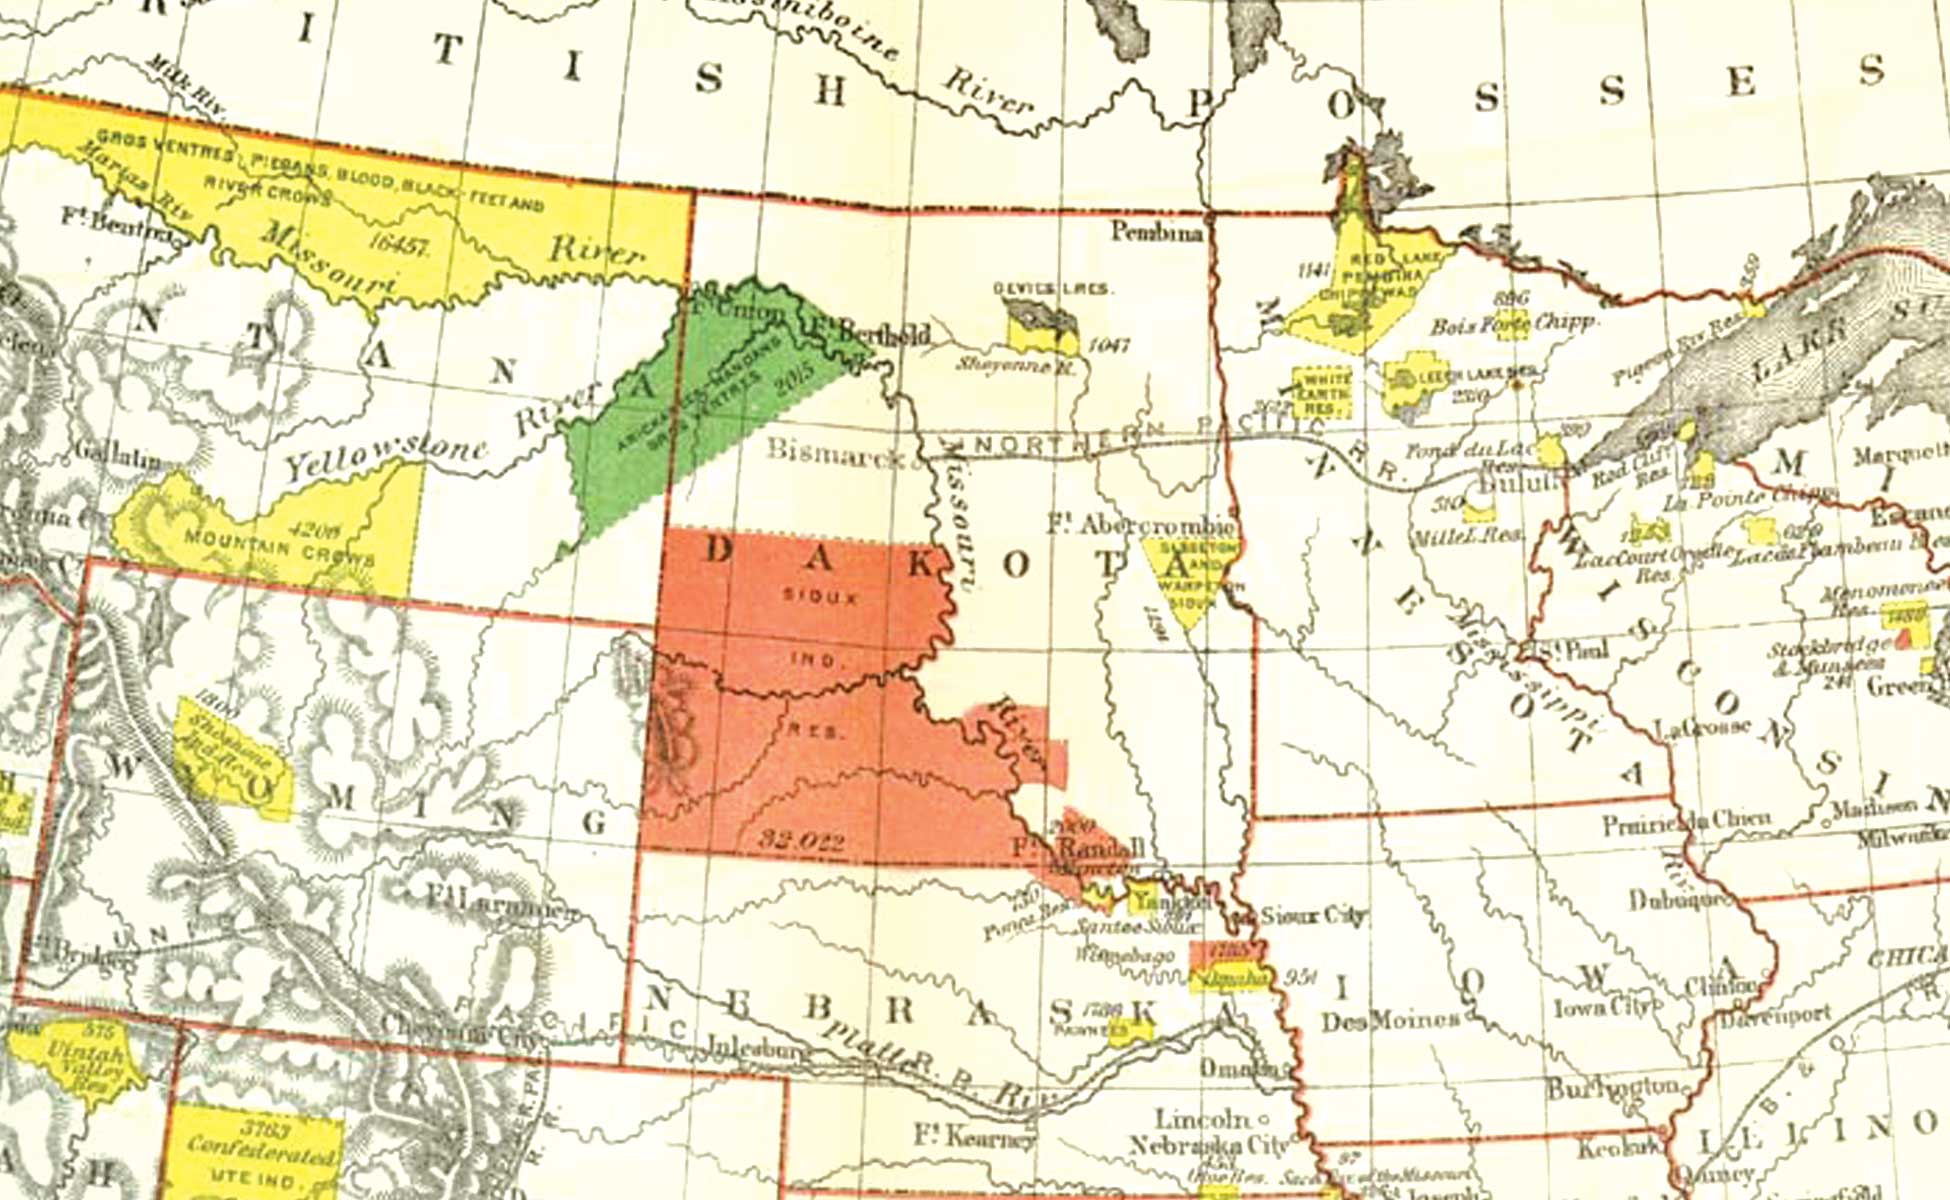 The U.S. government began forcing American Indians onto reservations in 1851.